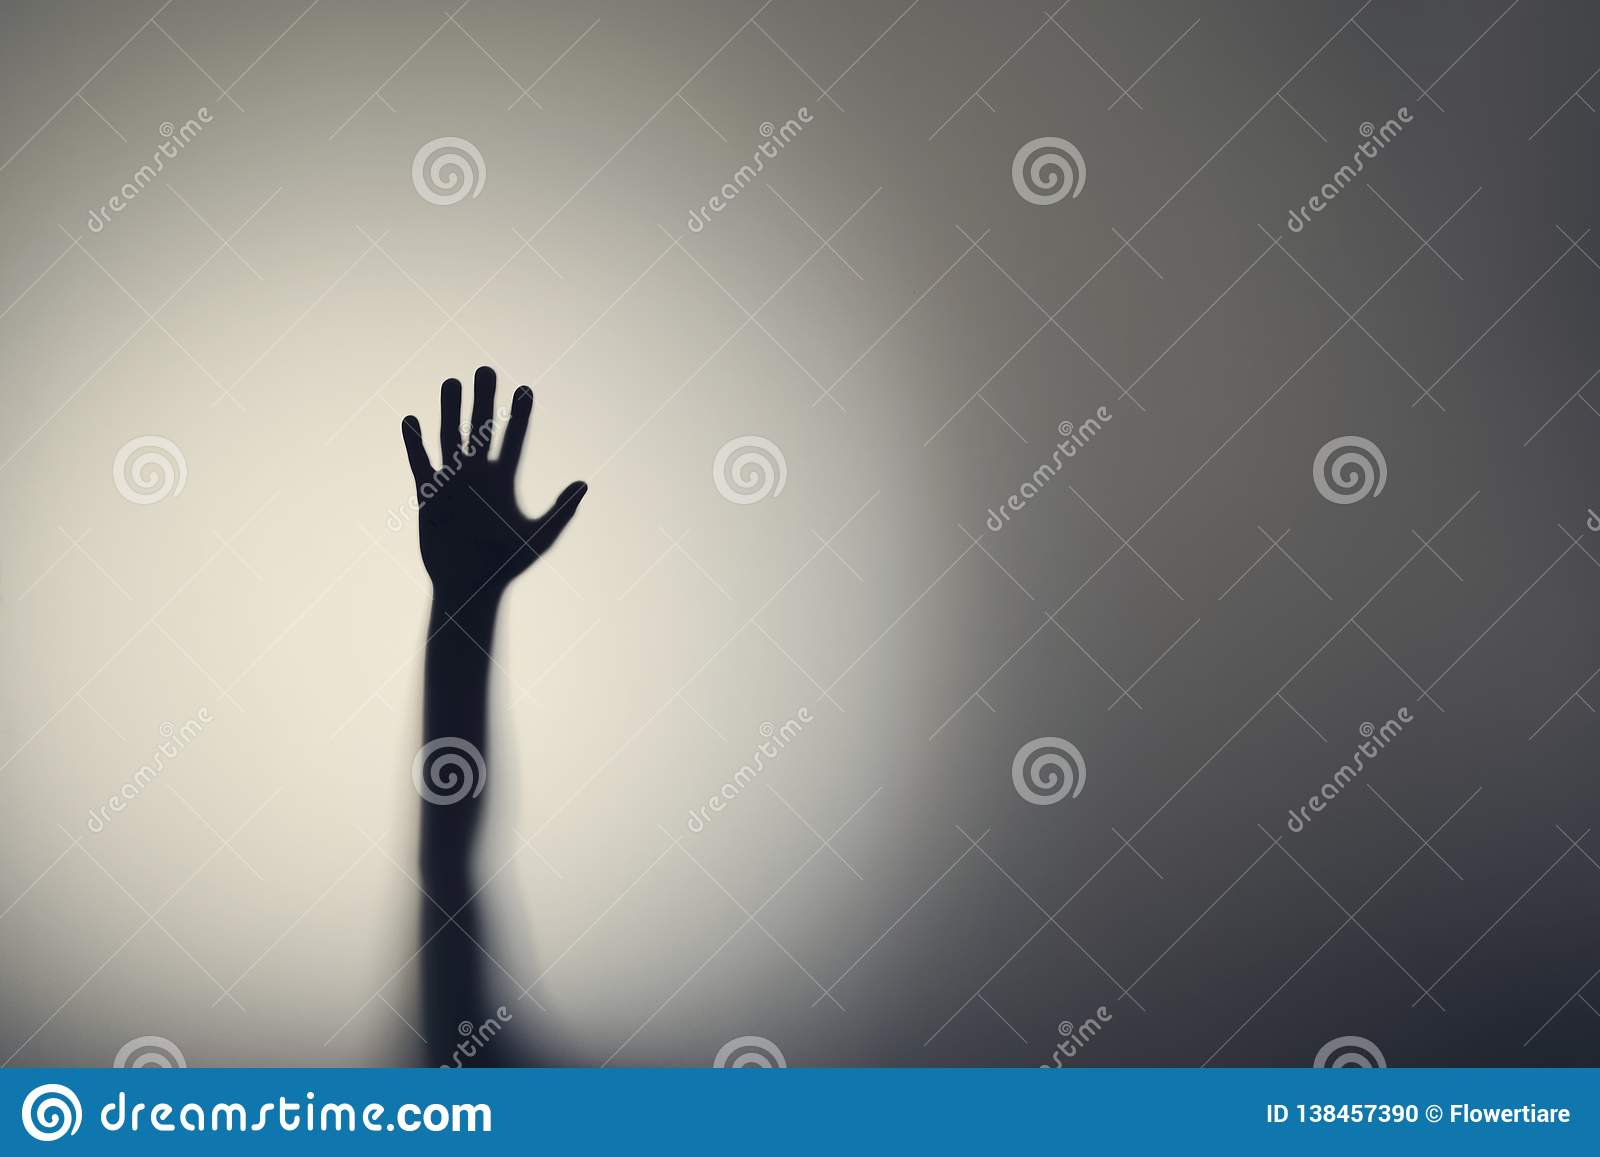 Silhouette of woman hands behind glass door. Concept of depression, fear, panic attacks